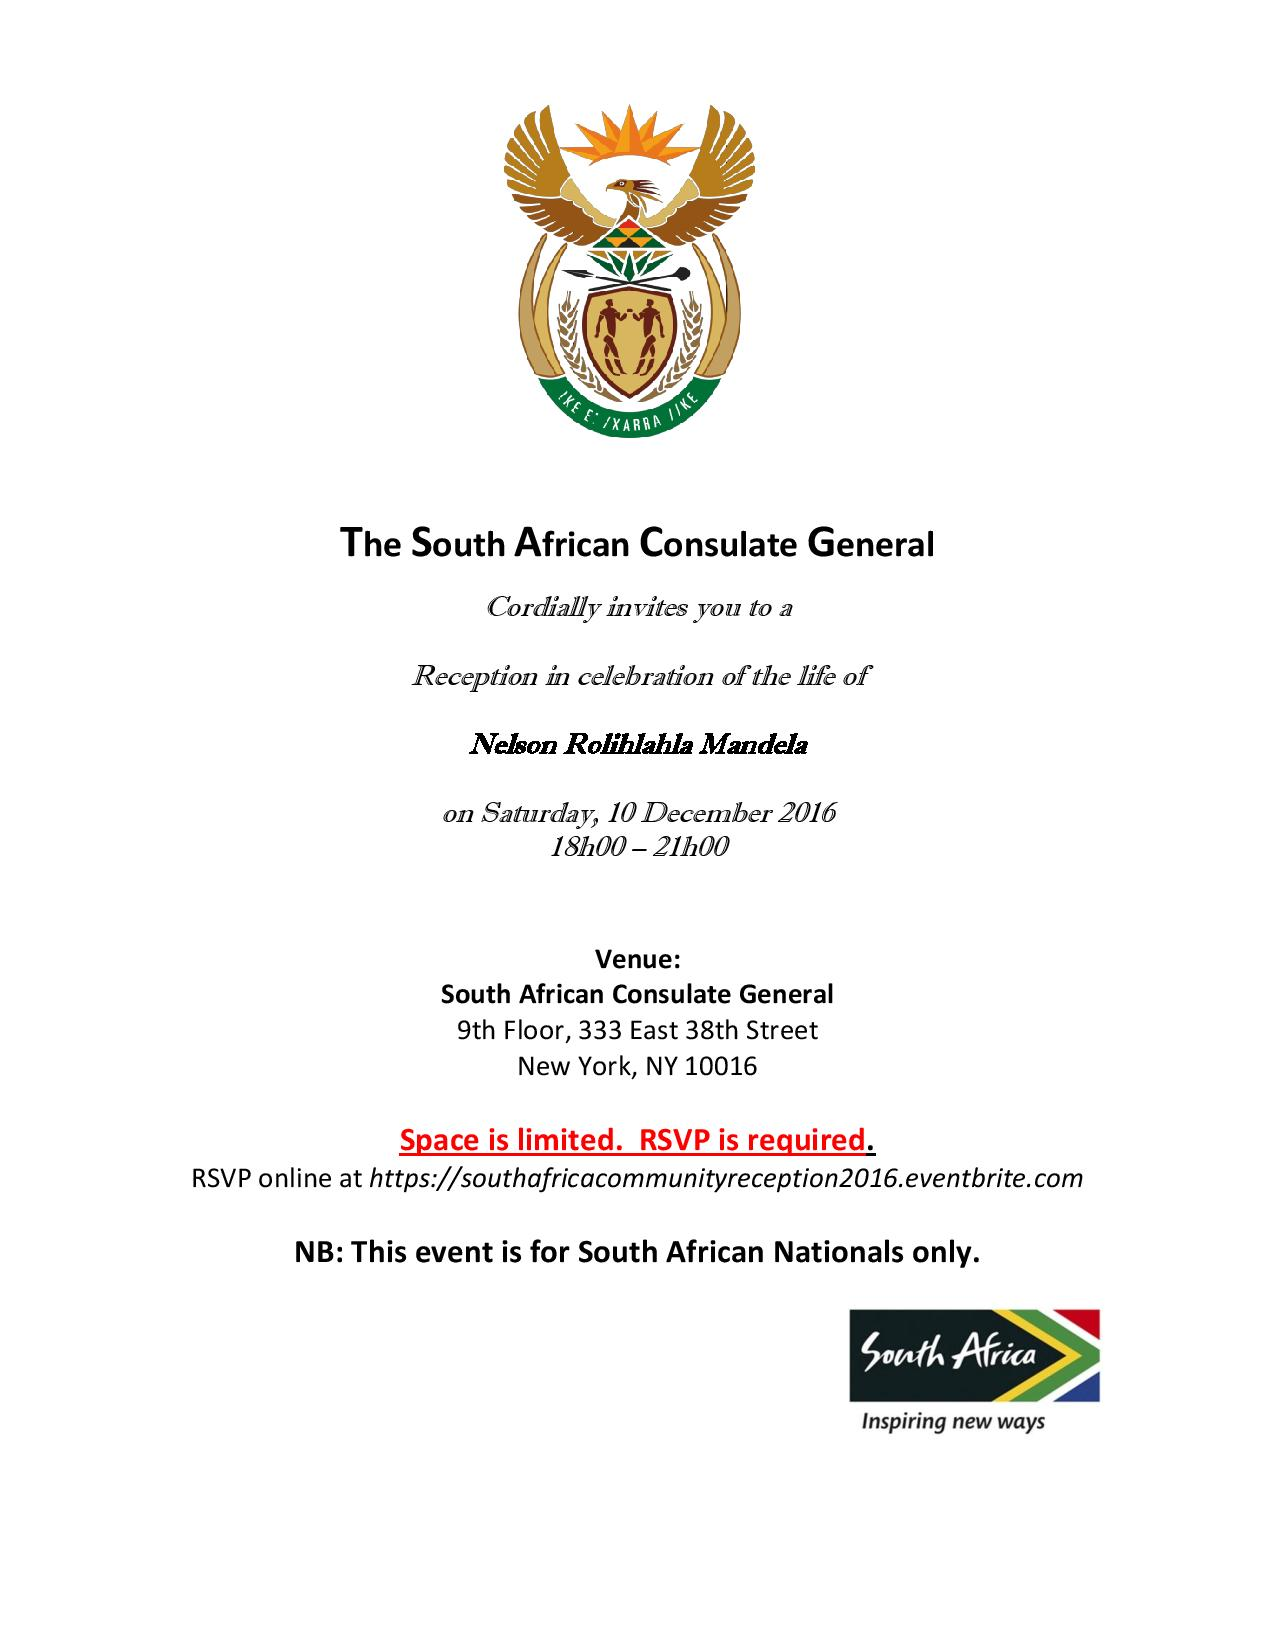 South African Community Reception Invite 2016